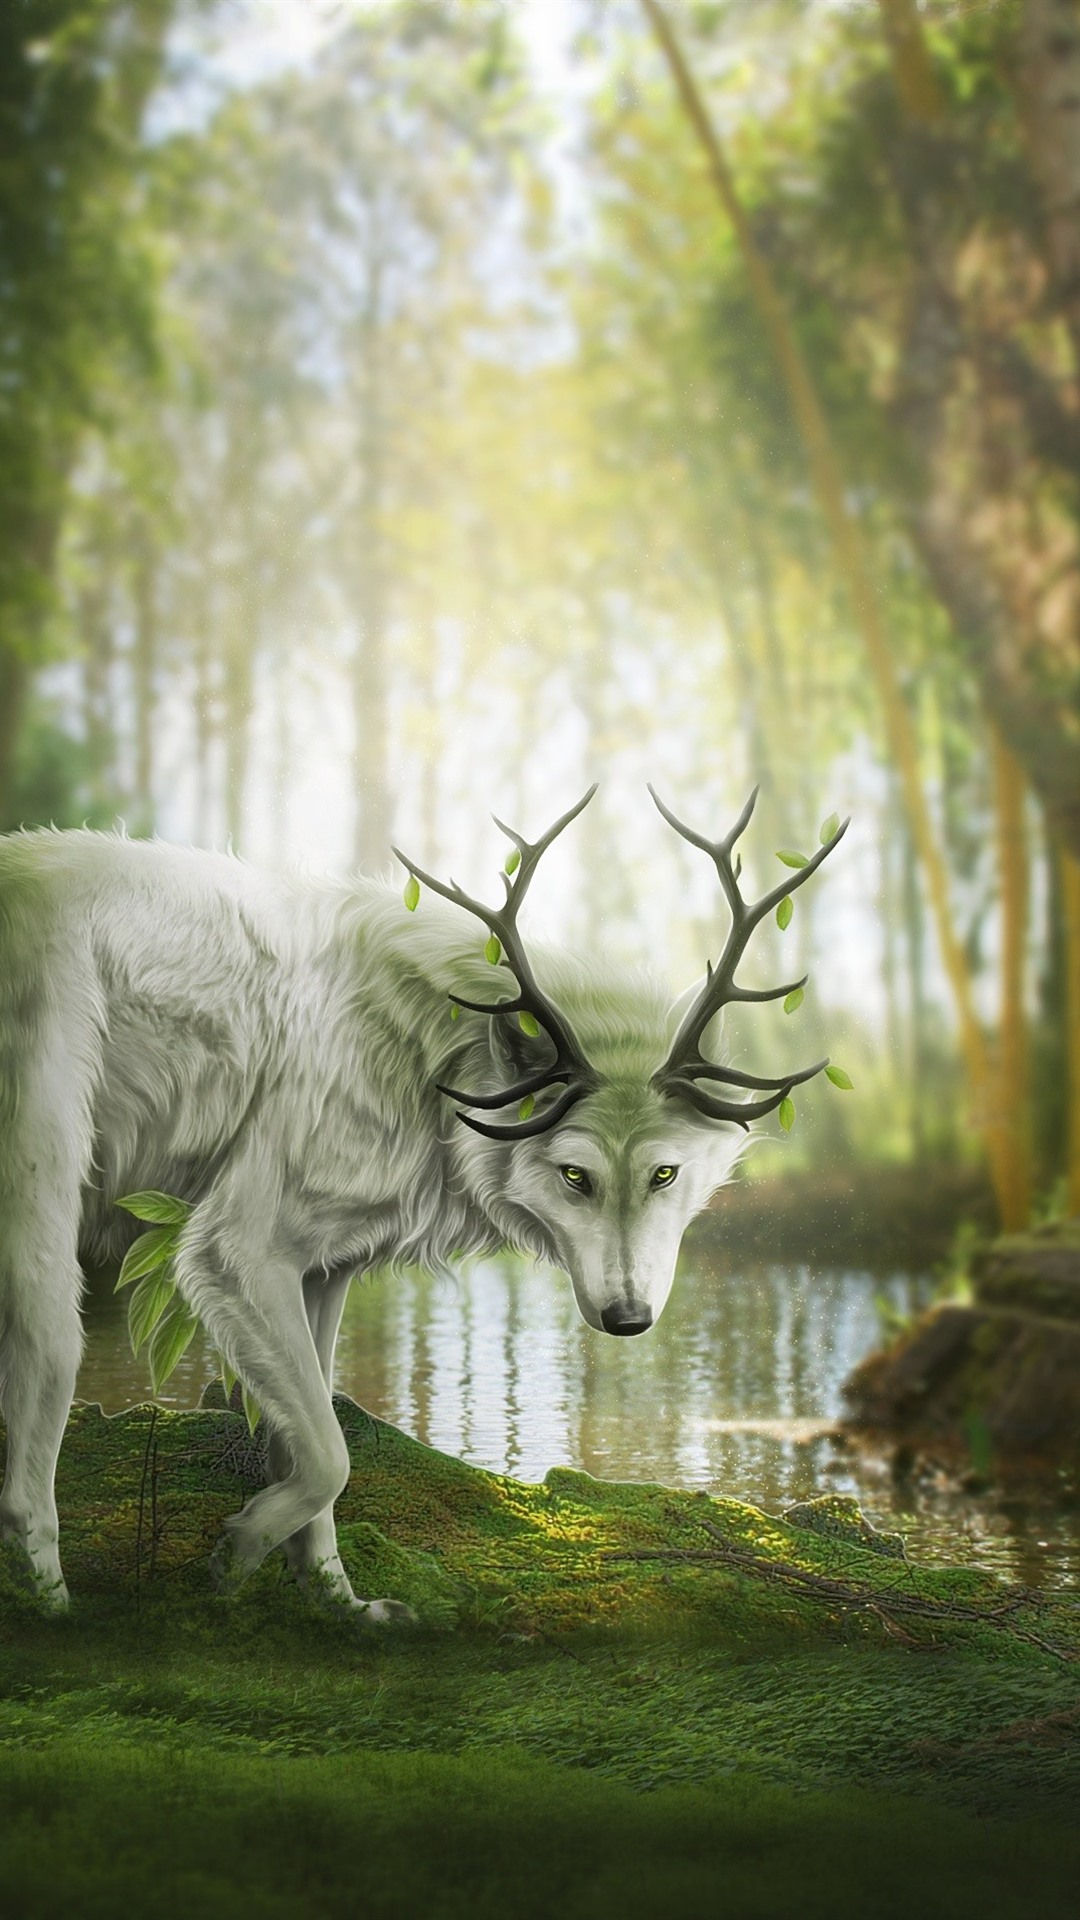 Wallpaper Fantasy Animal Wolf Or Deer Forest 2880x1800 Hd